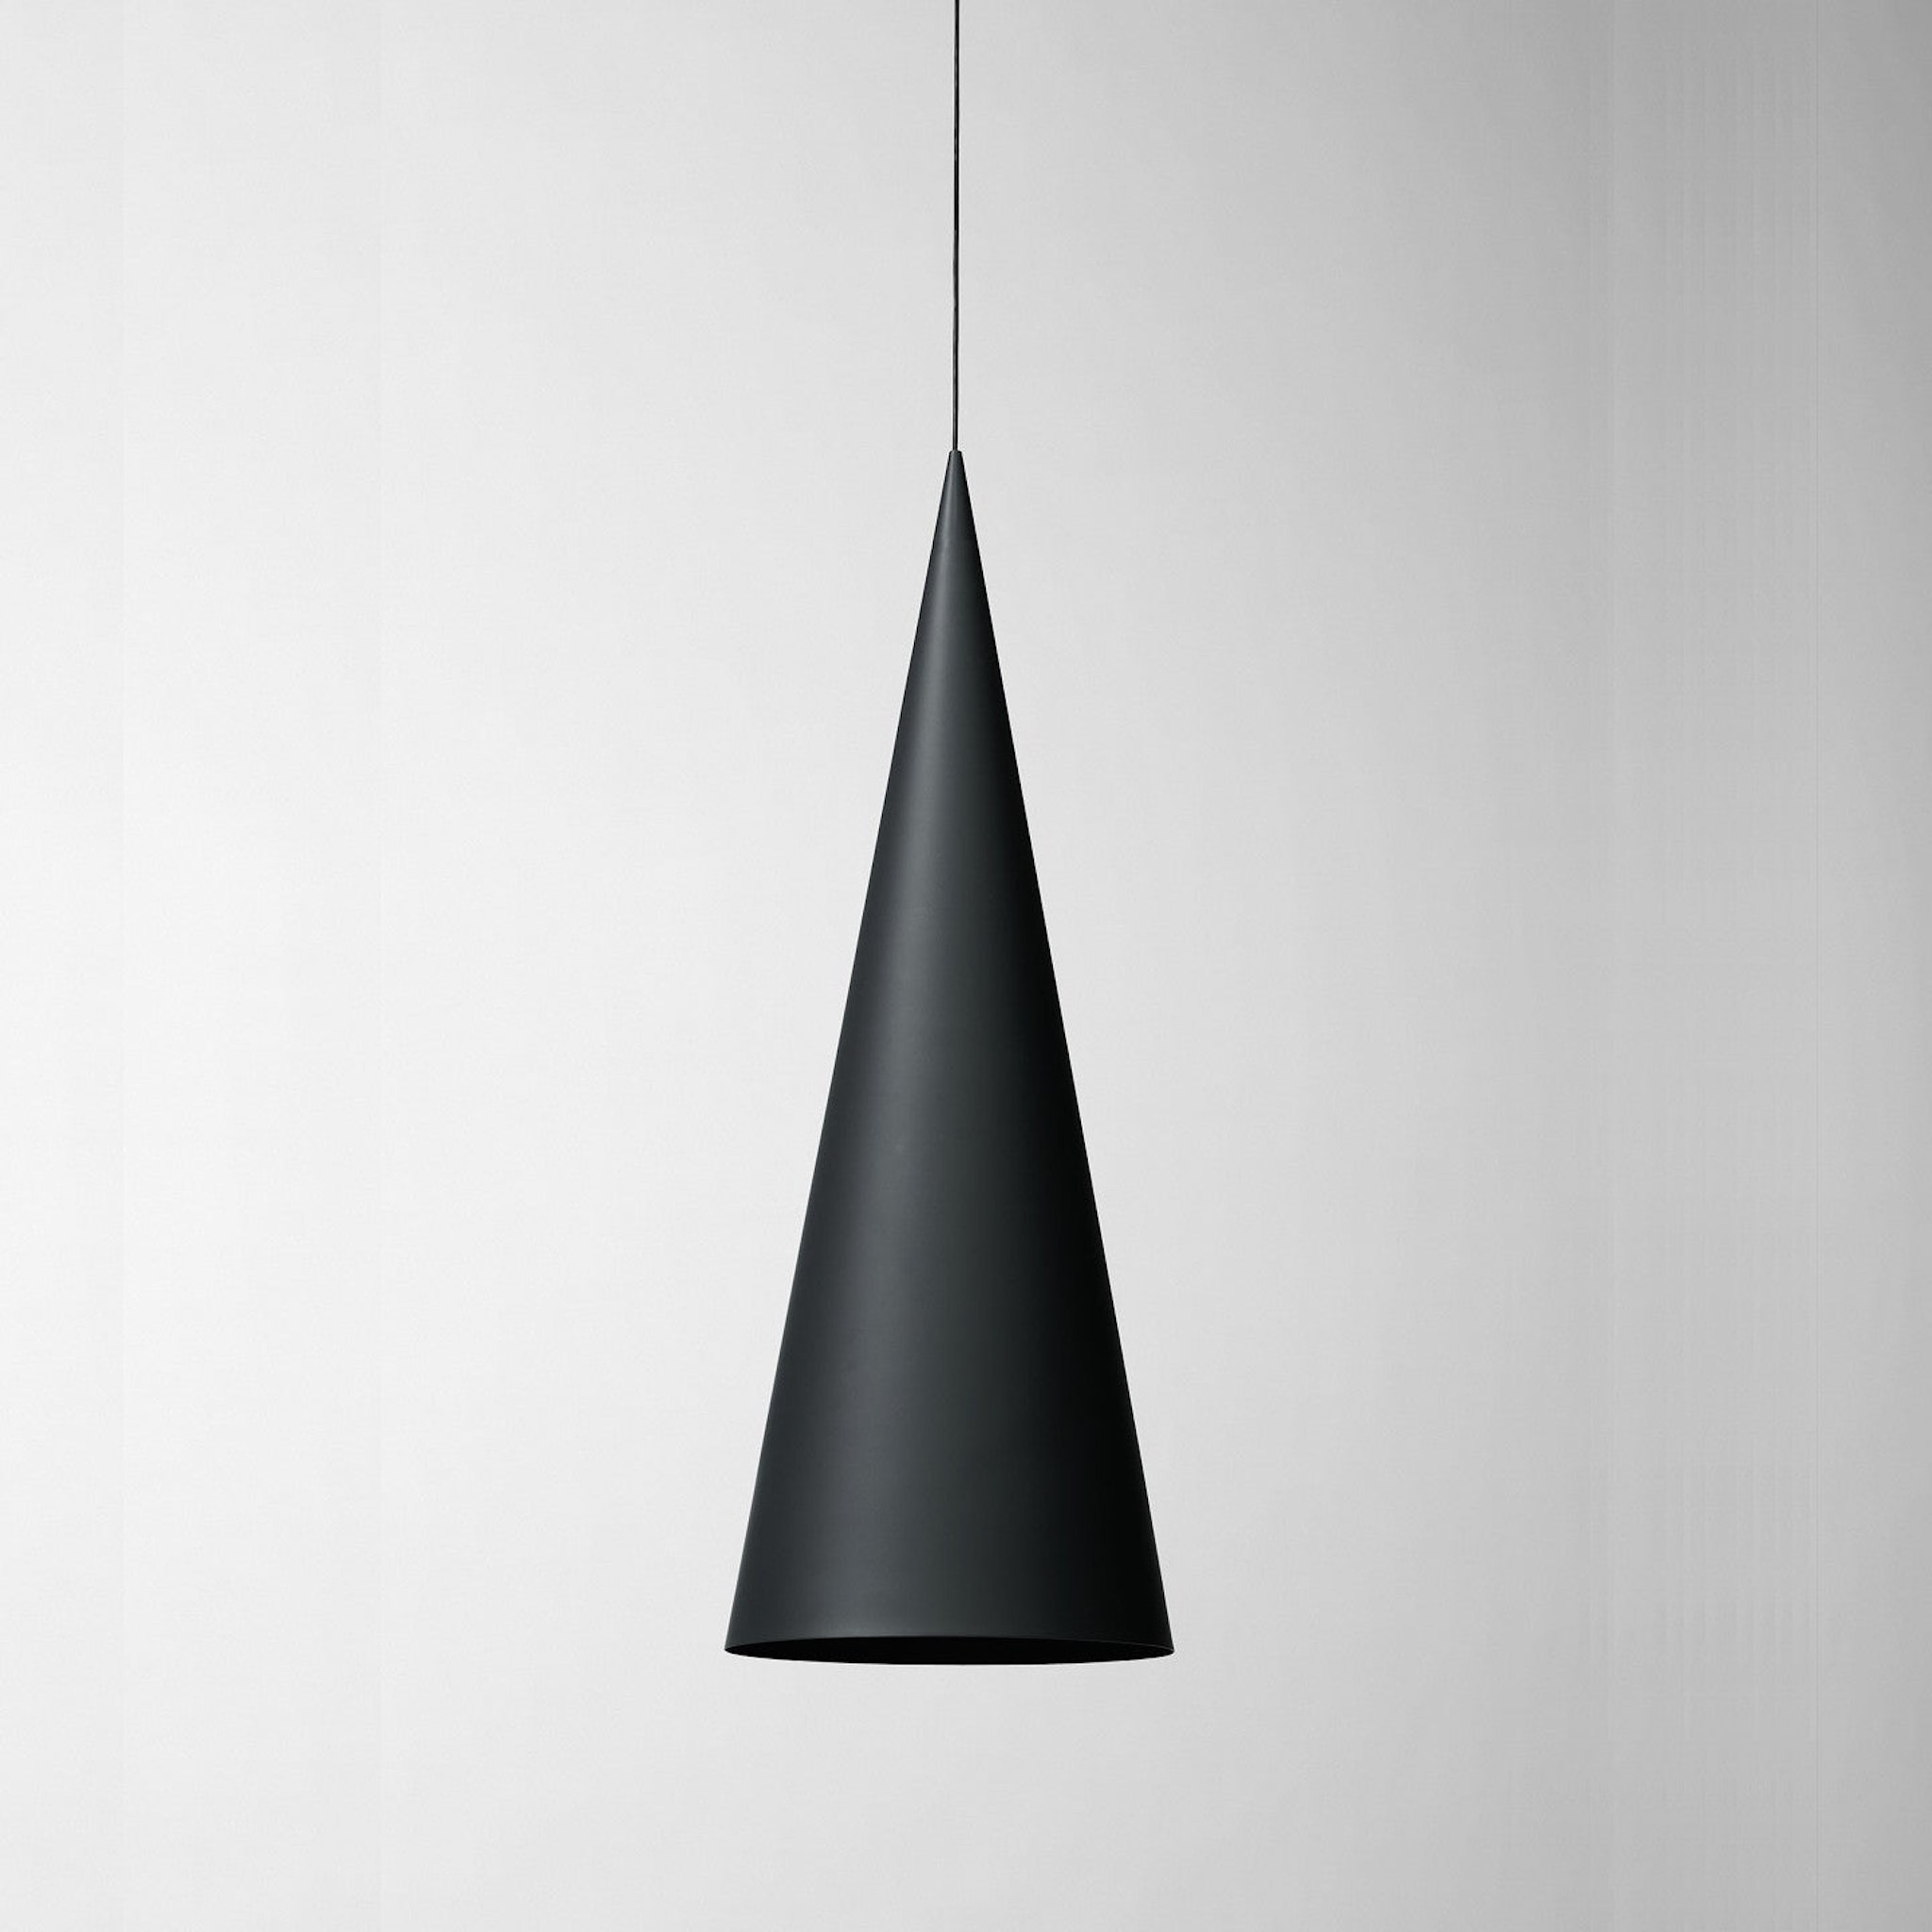 w151 Extra Large Pendant Lamp by Wastberg